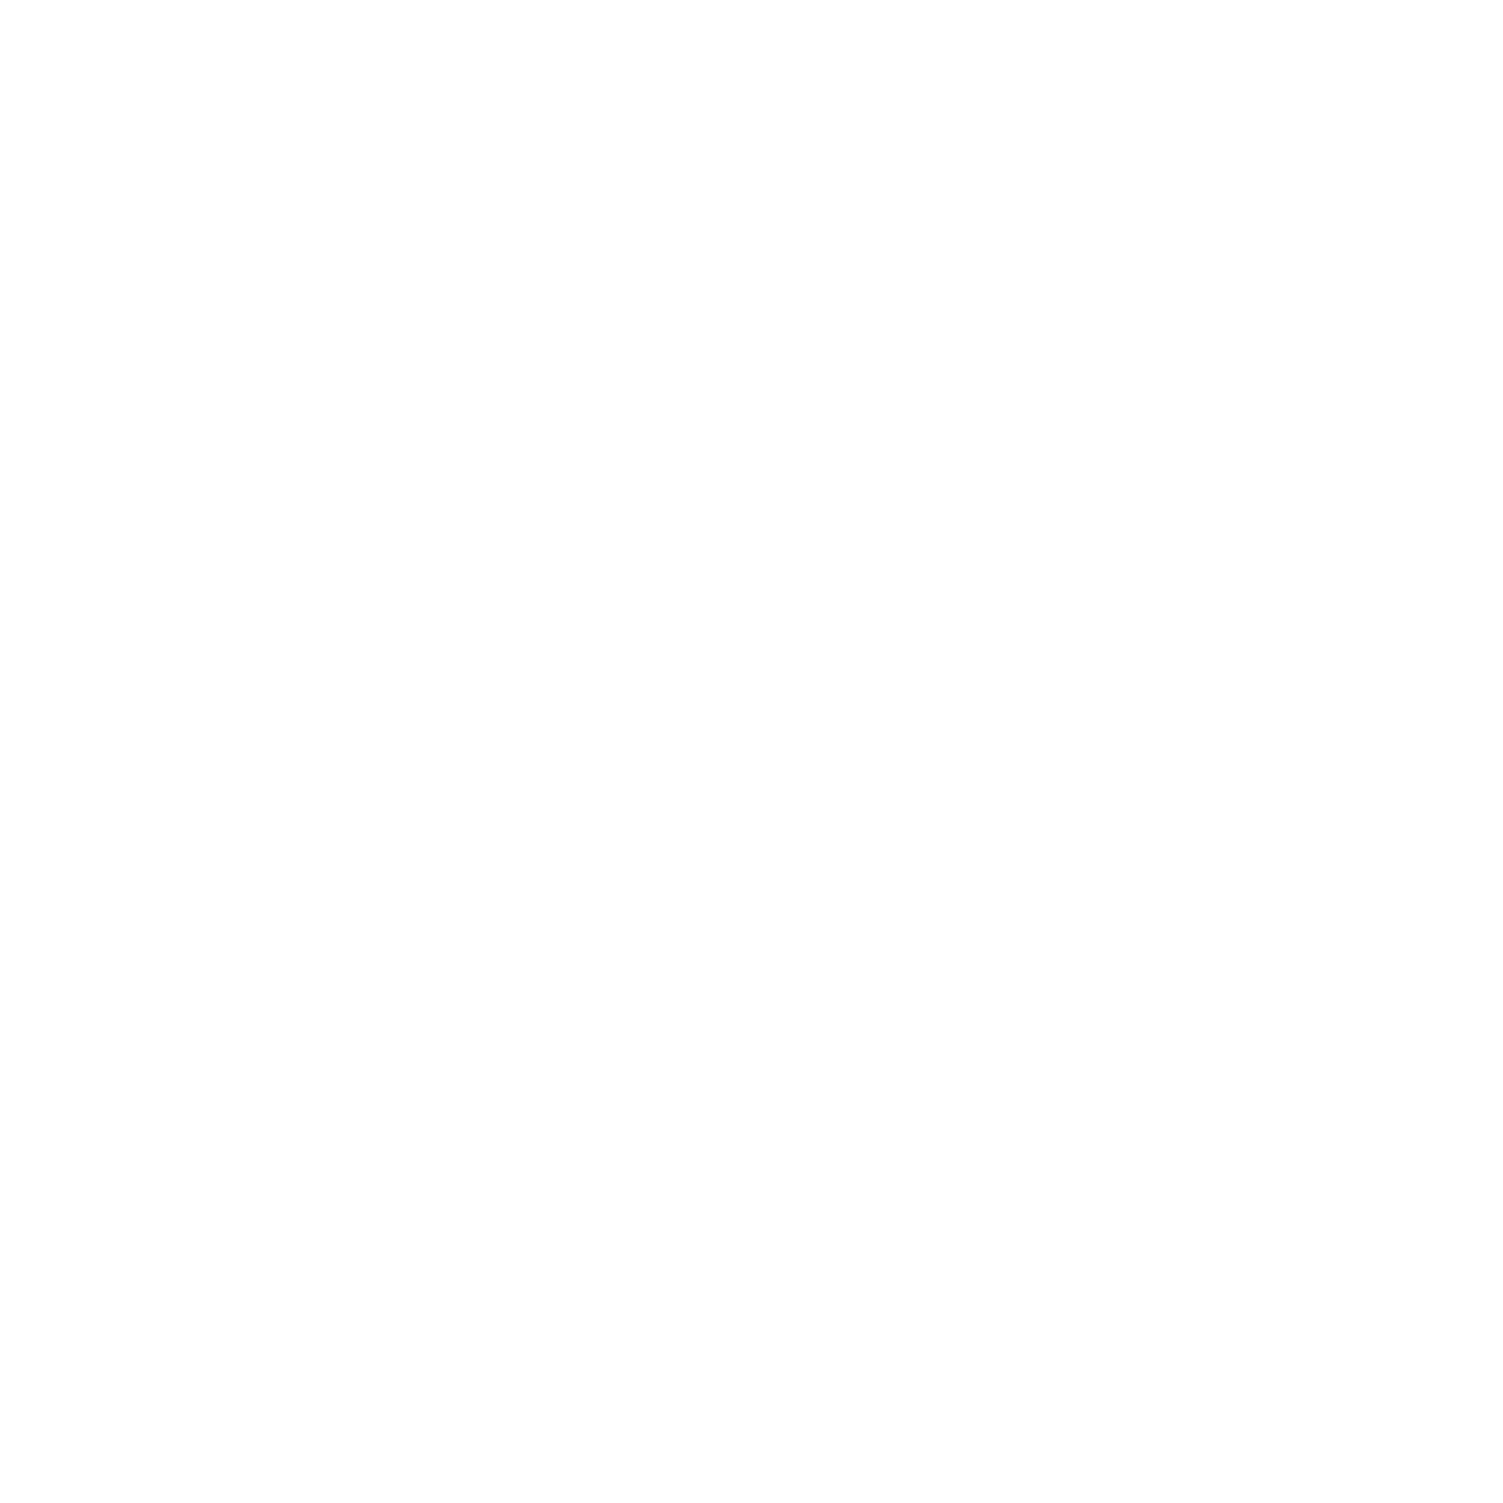 John Deere Operations Center